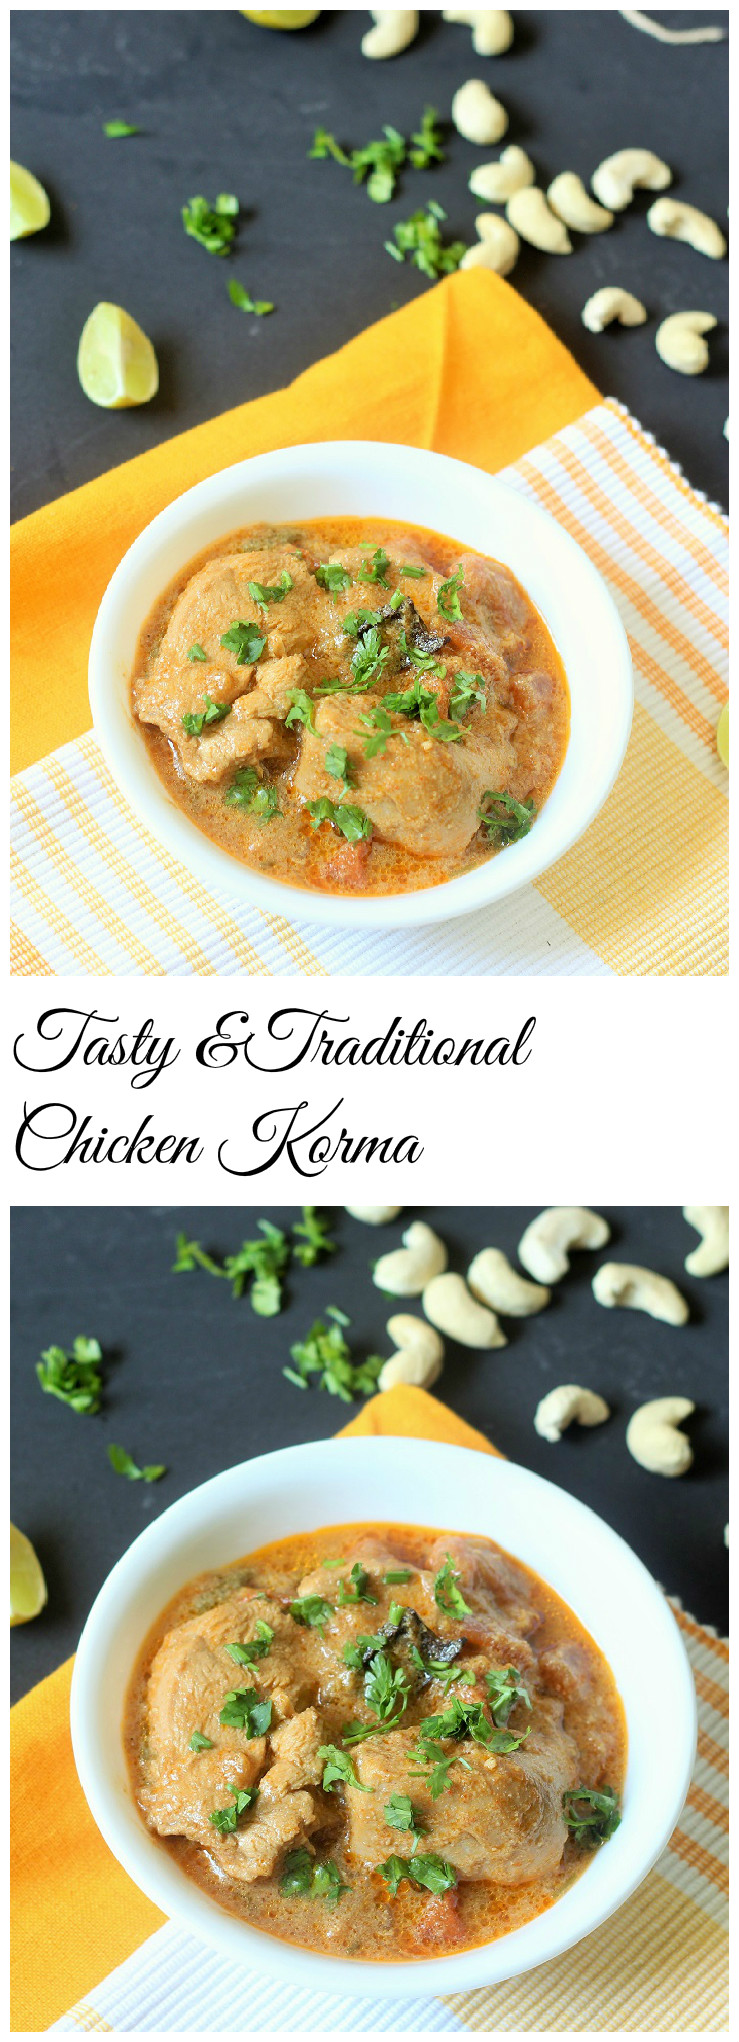 Tasty and Traditional Chicken Korma Recipe